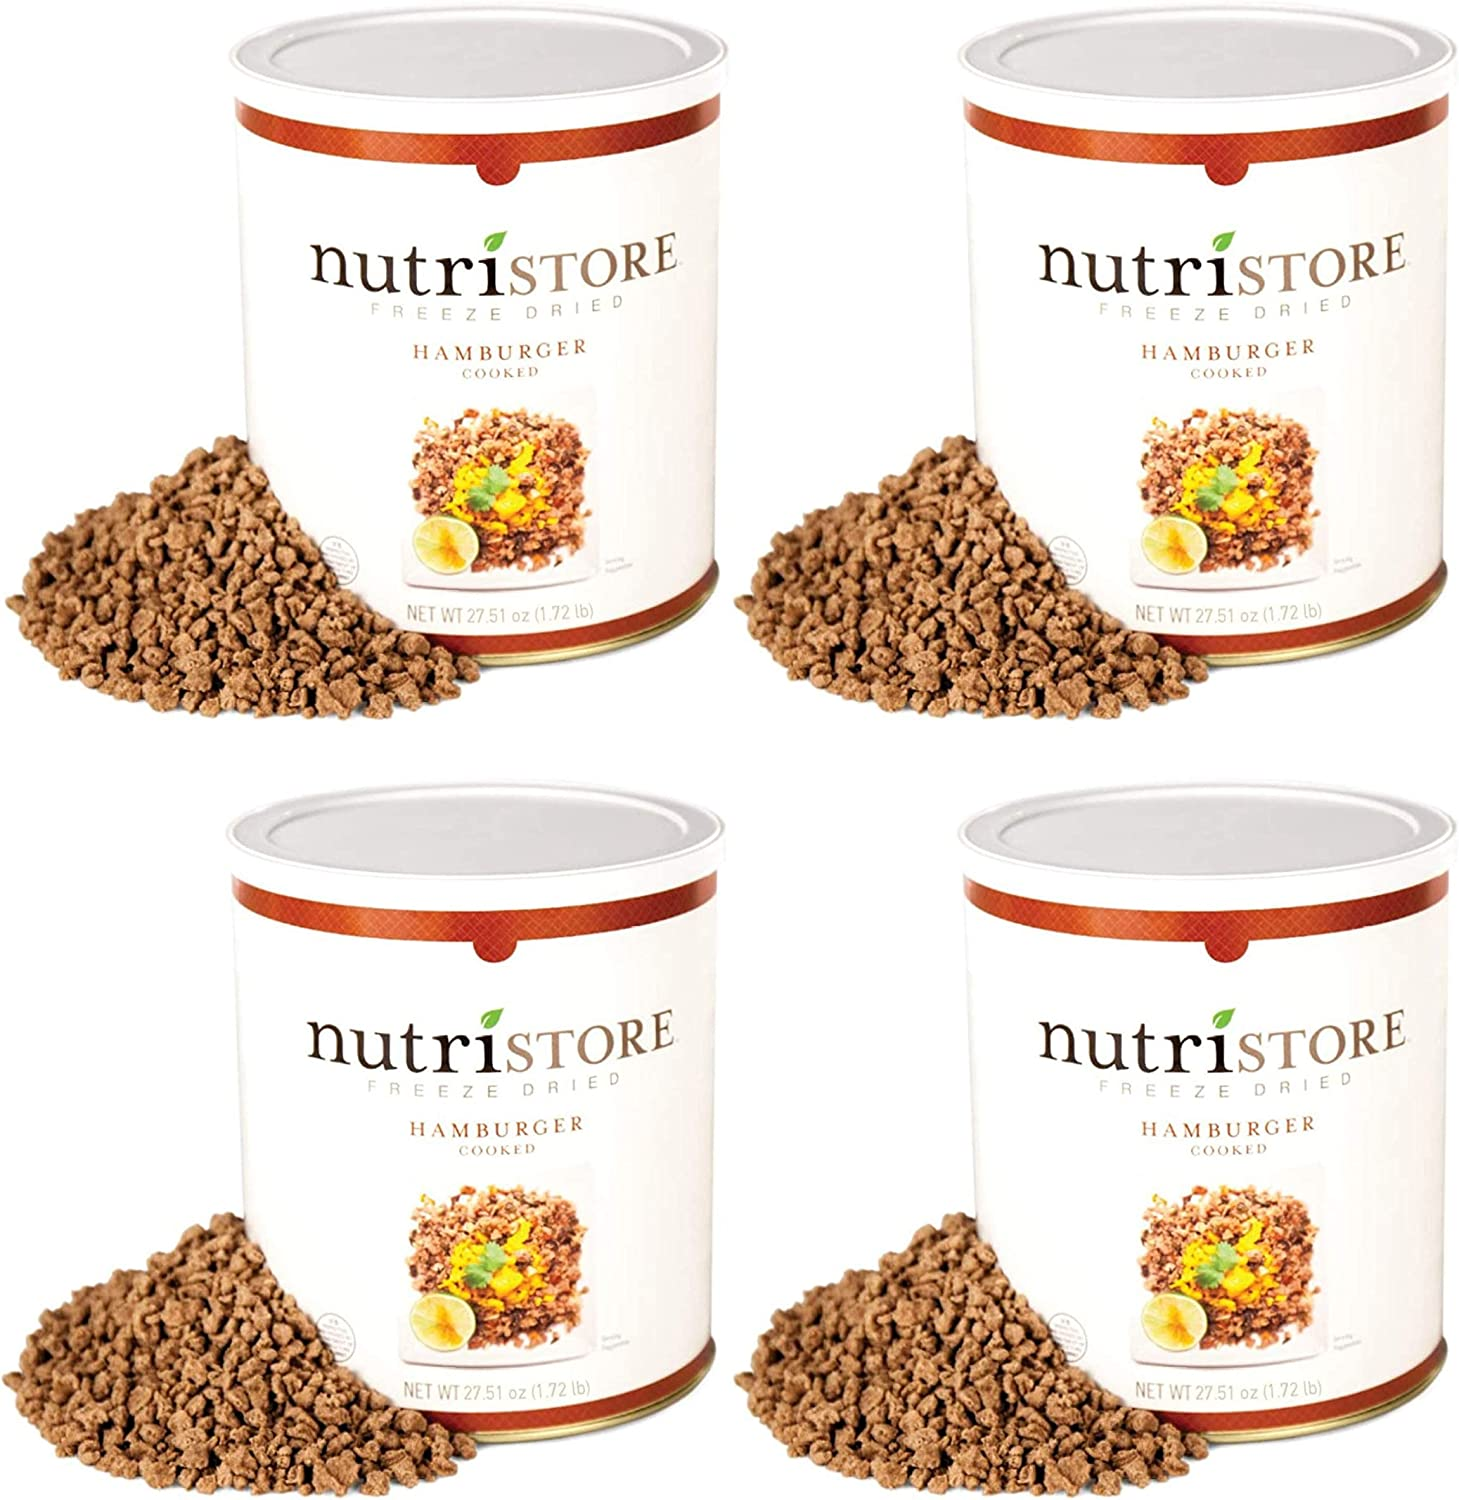 Nutristore Freeze-Dried Ground Beef | Emergency Survival Bulk Food Storage | Premium Quality Meat | Perfect for Lightweight Backpacking, Camping, or Home Meals | USDA Inspected | 25-Year Shelf Life